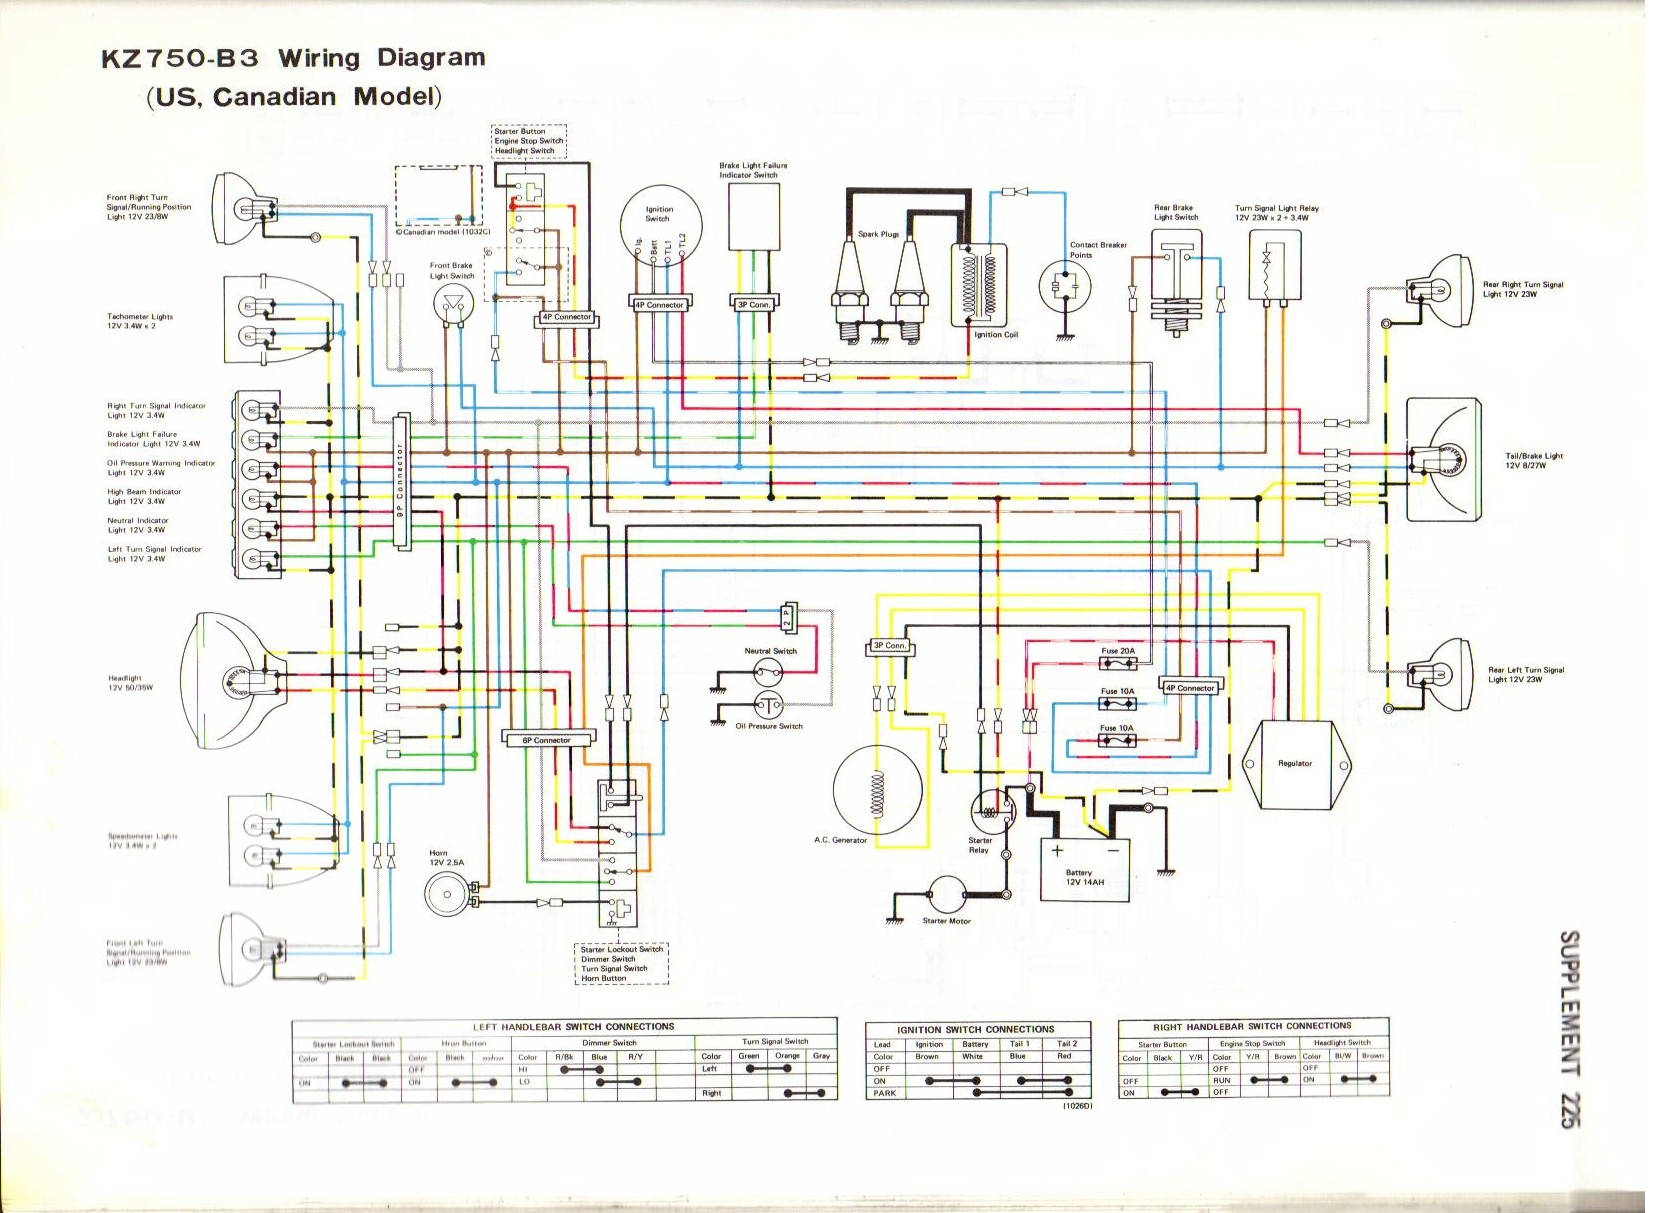 kz750b3 kawasaki kz750 wiring harness kawasaki wiring diagram instructions kz750 wiring harn at n-0.co